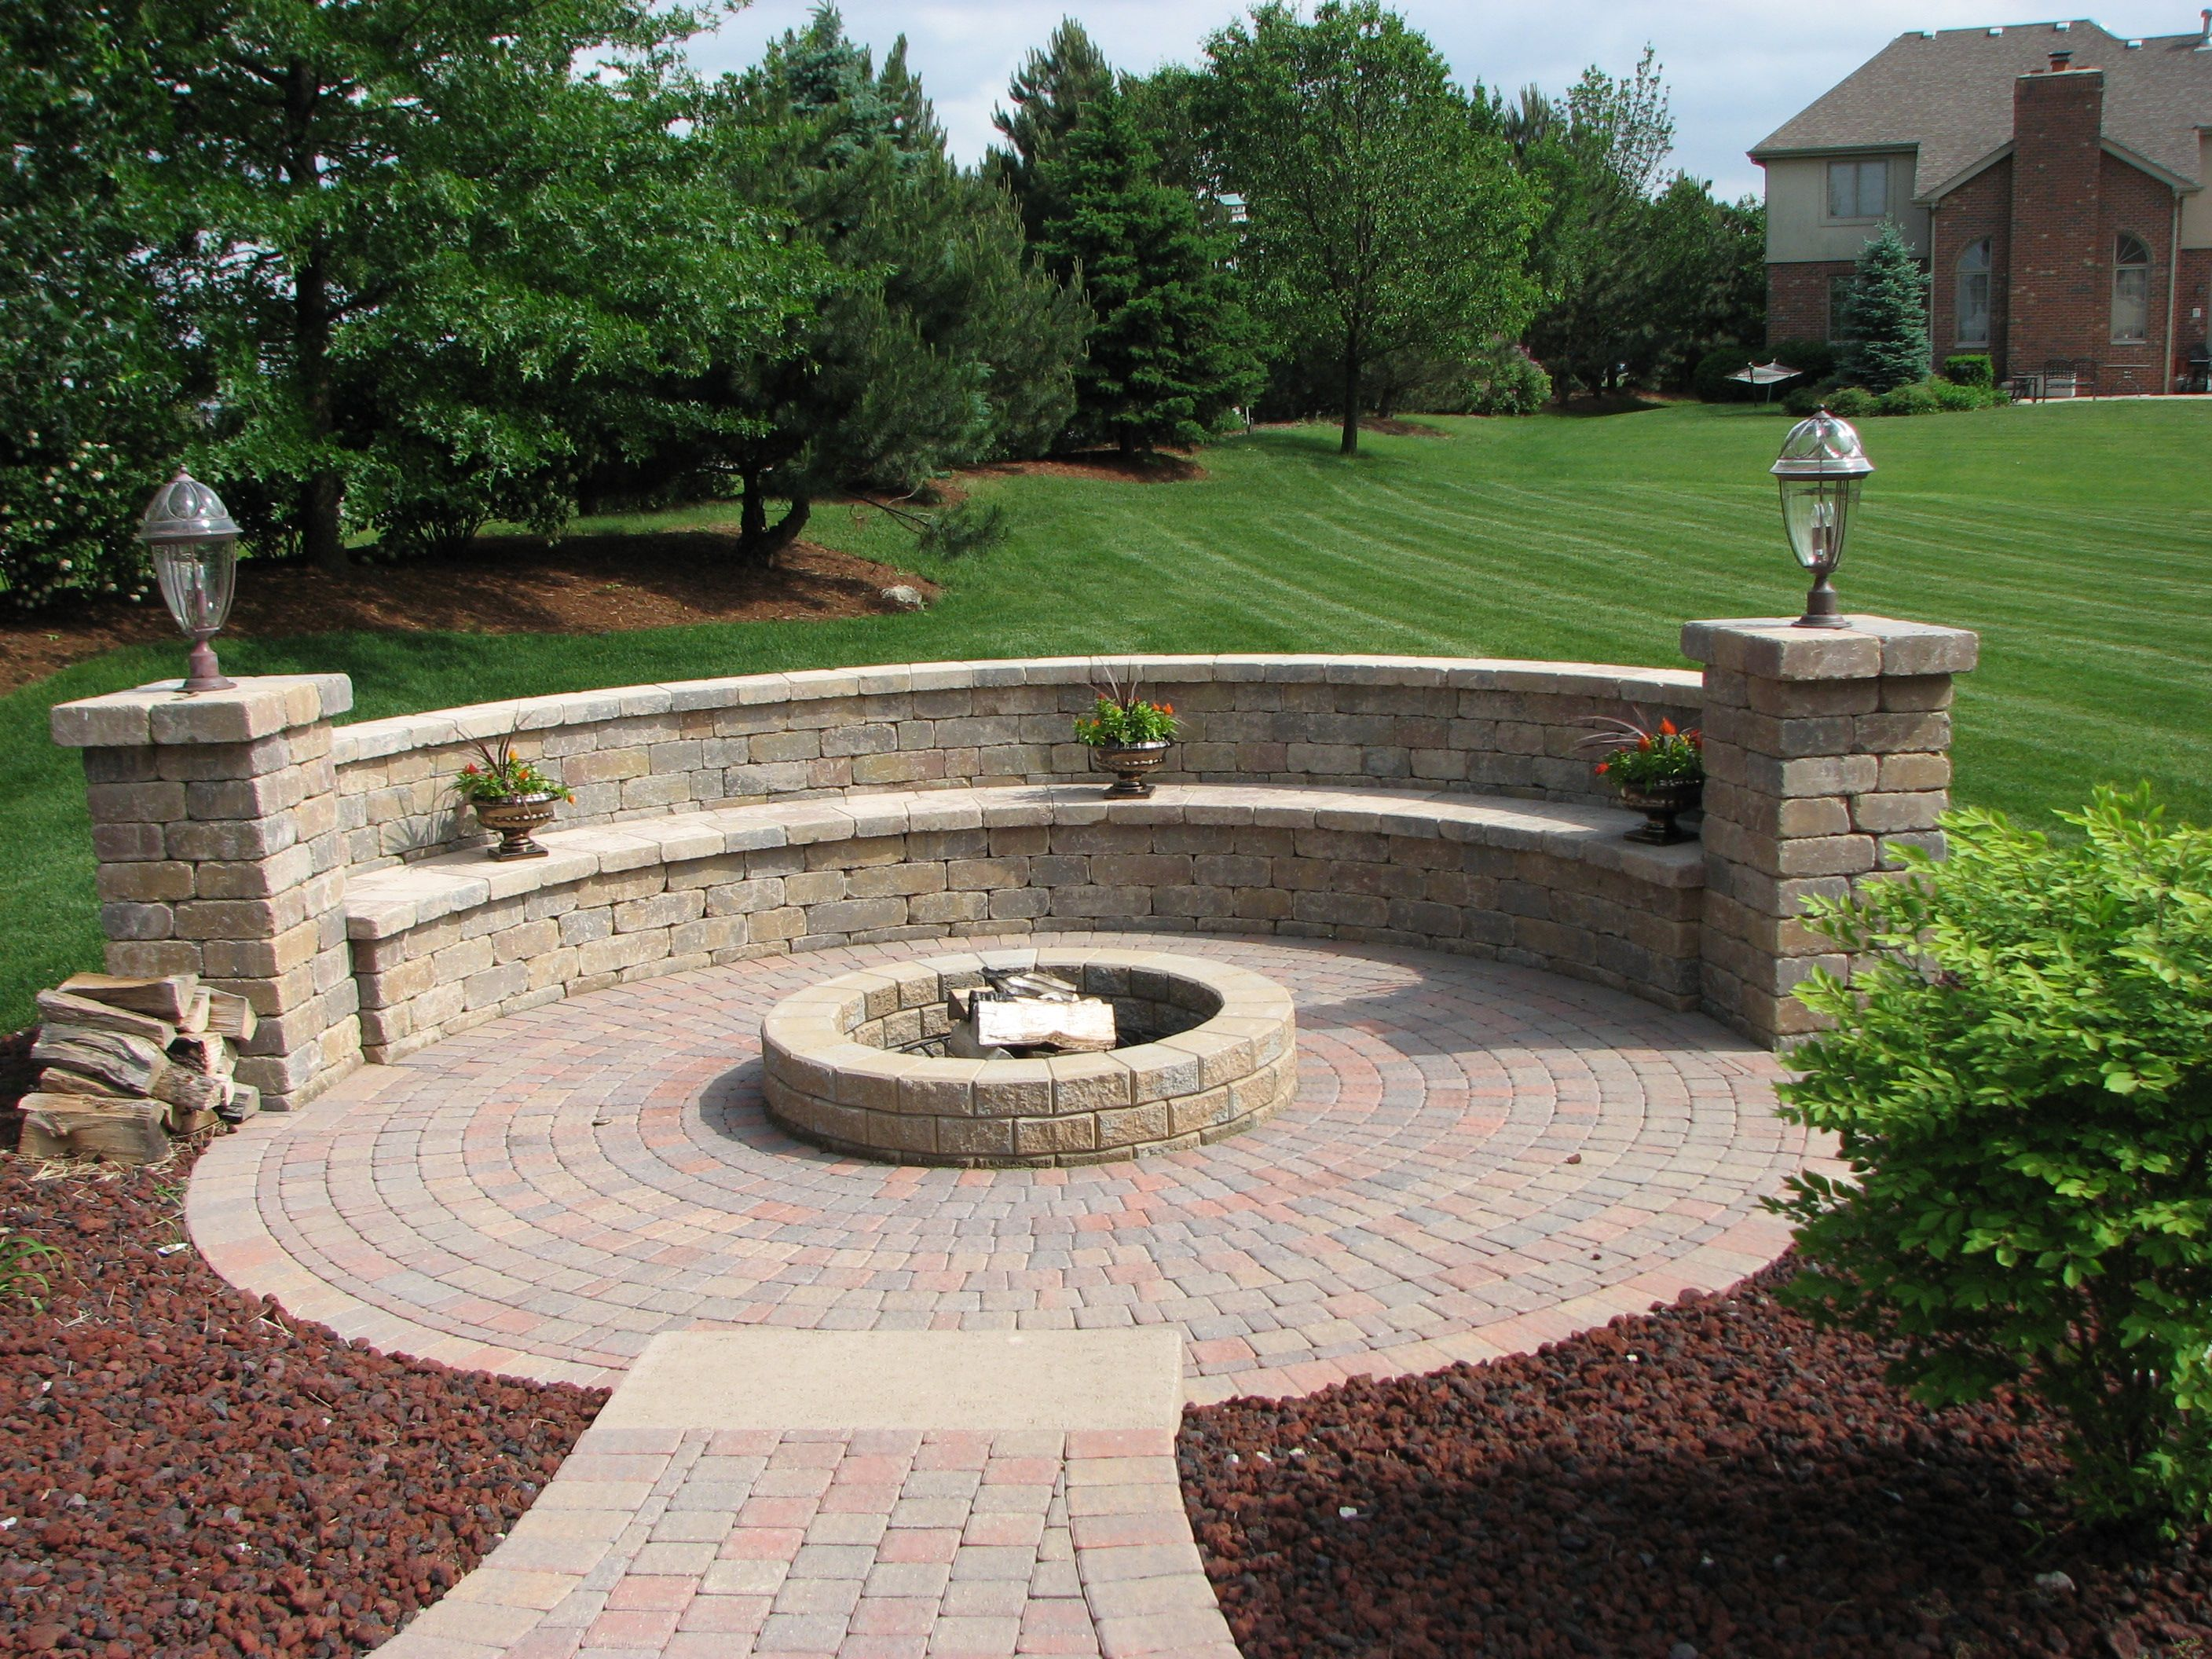 Backyard Landscaping Ideas With Fire Pit fire pit ideas 18 Inspiration For Backyard Fire Pit Designs